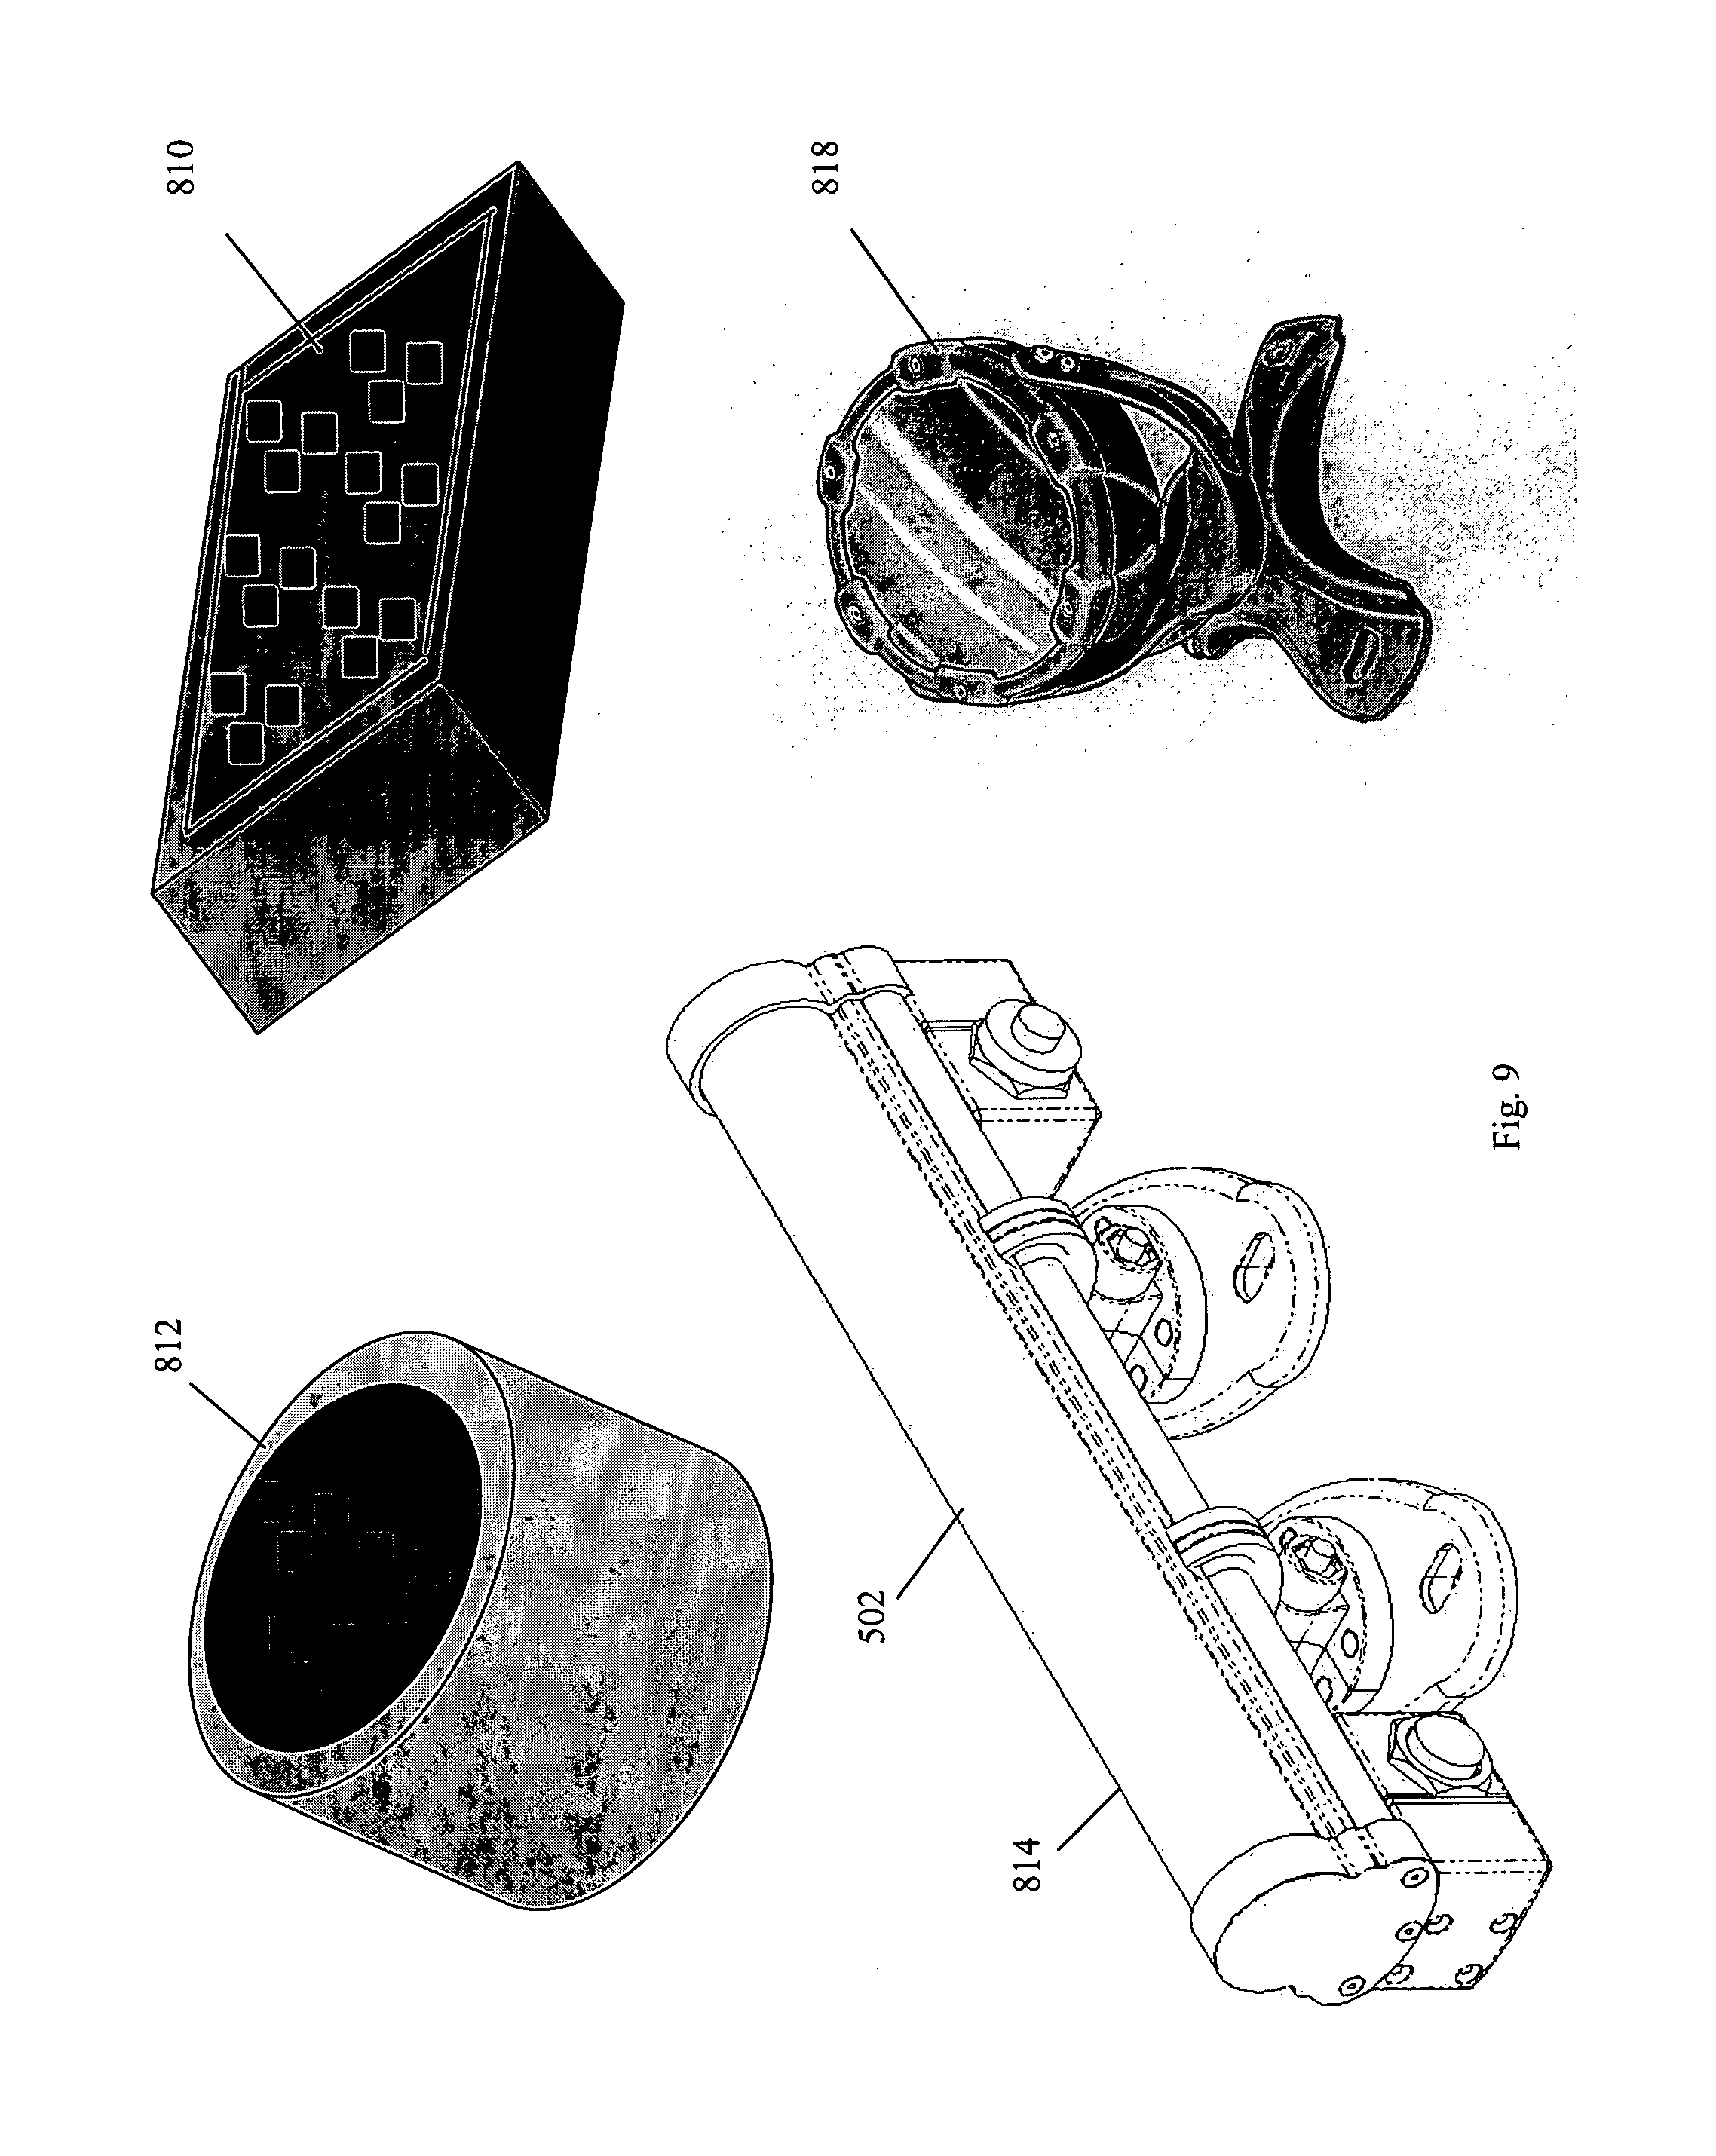 patente us7178941 - lighting methods and systems